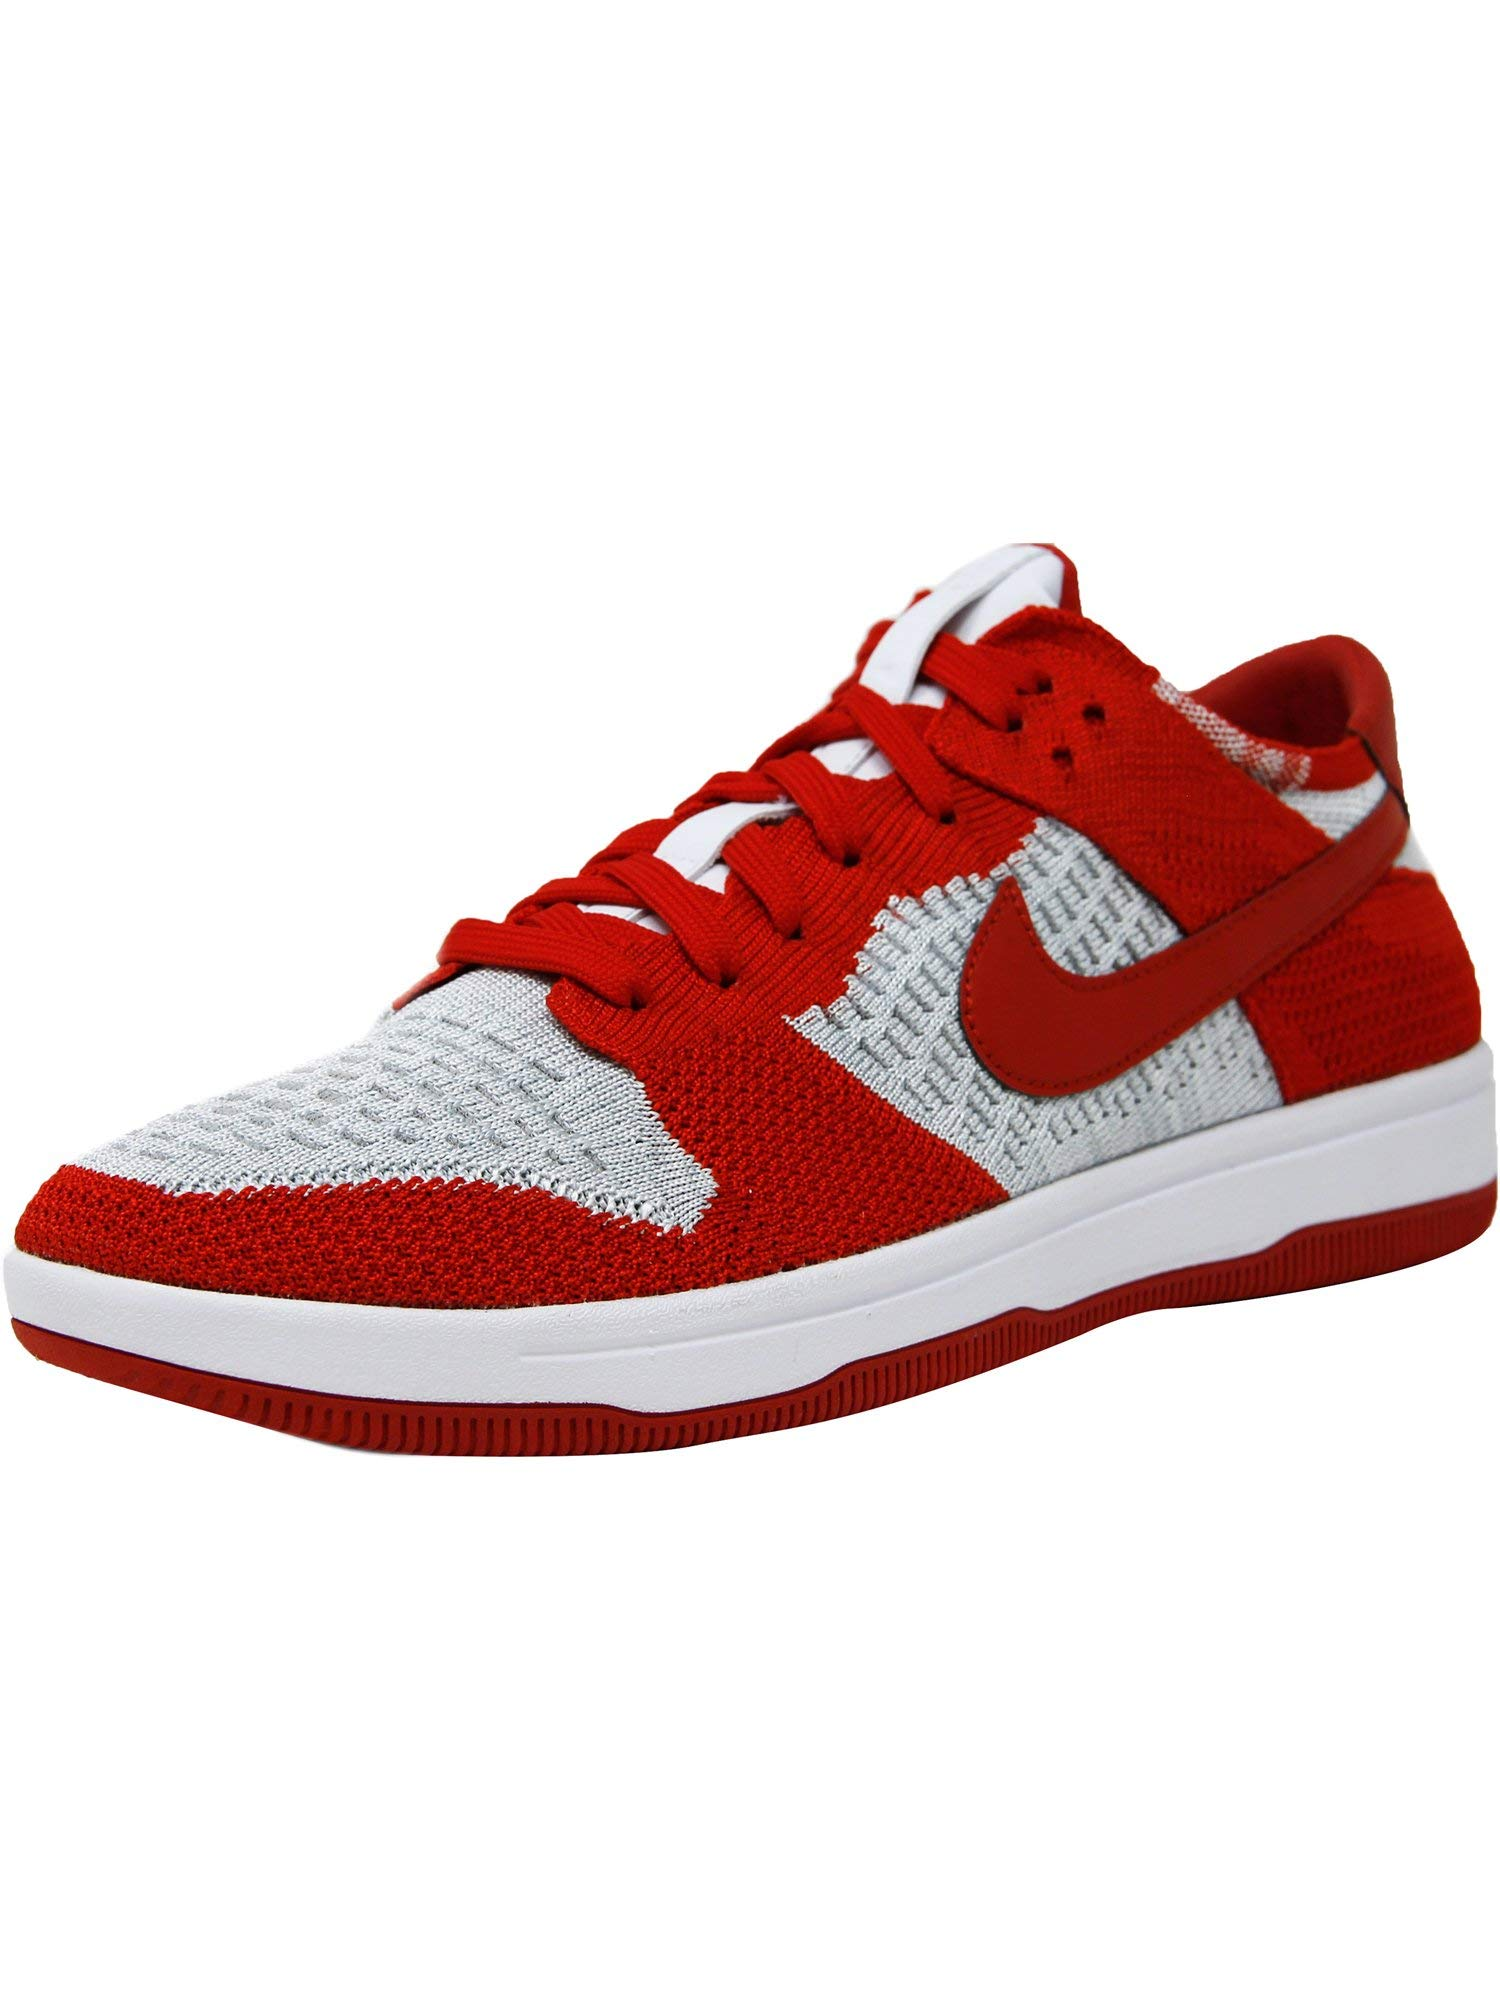 Galleon - Nike Men s Dunk Flyknit University Red White-Wolf Grey Ankle-High  Basketball Shoe - 8.5M 1acb1a093